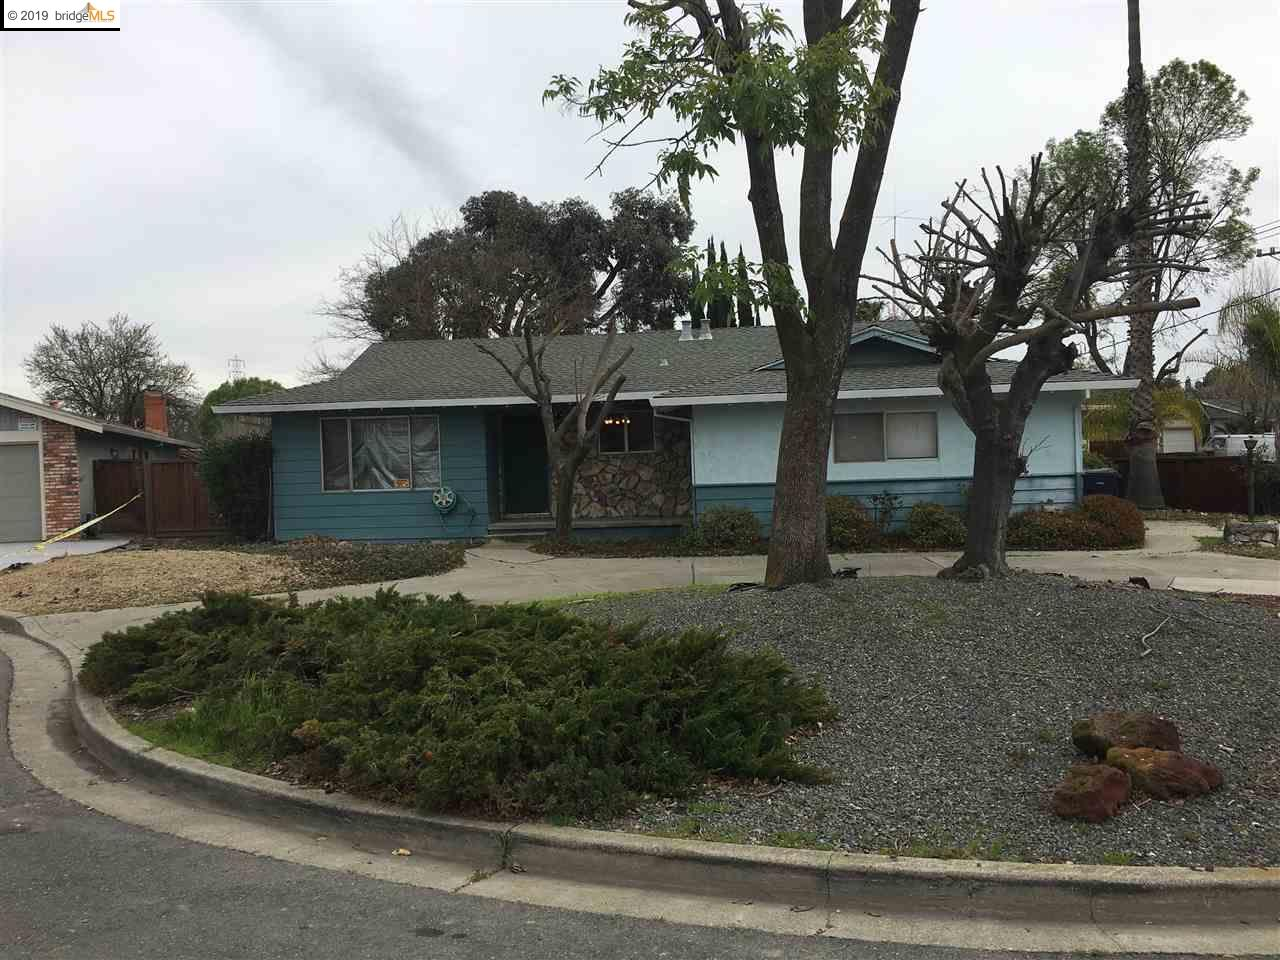 75 S Lake Dr, ANTIOCH, CA 94509